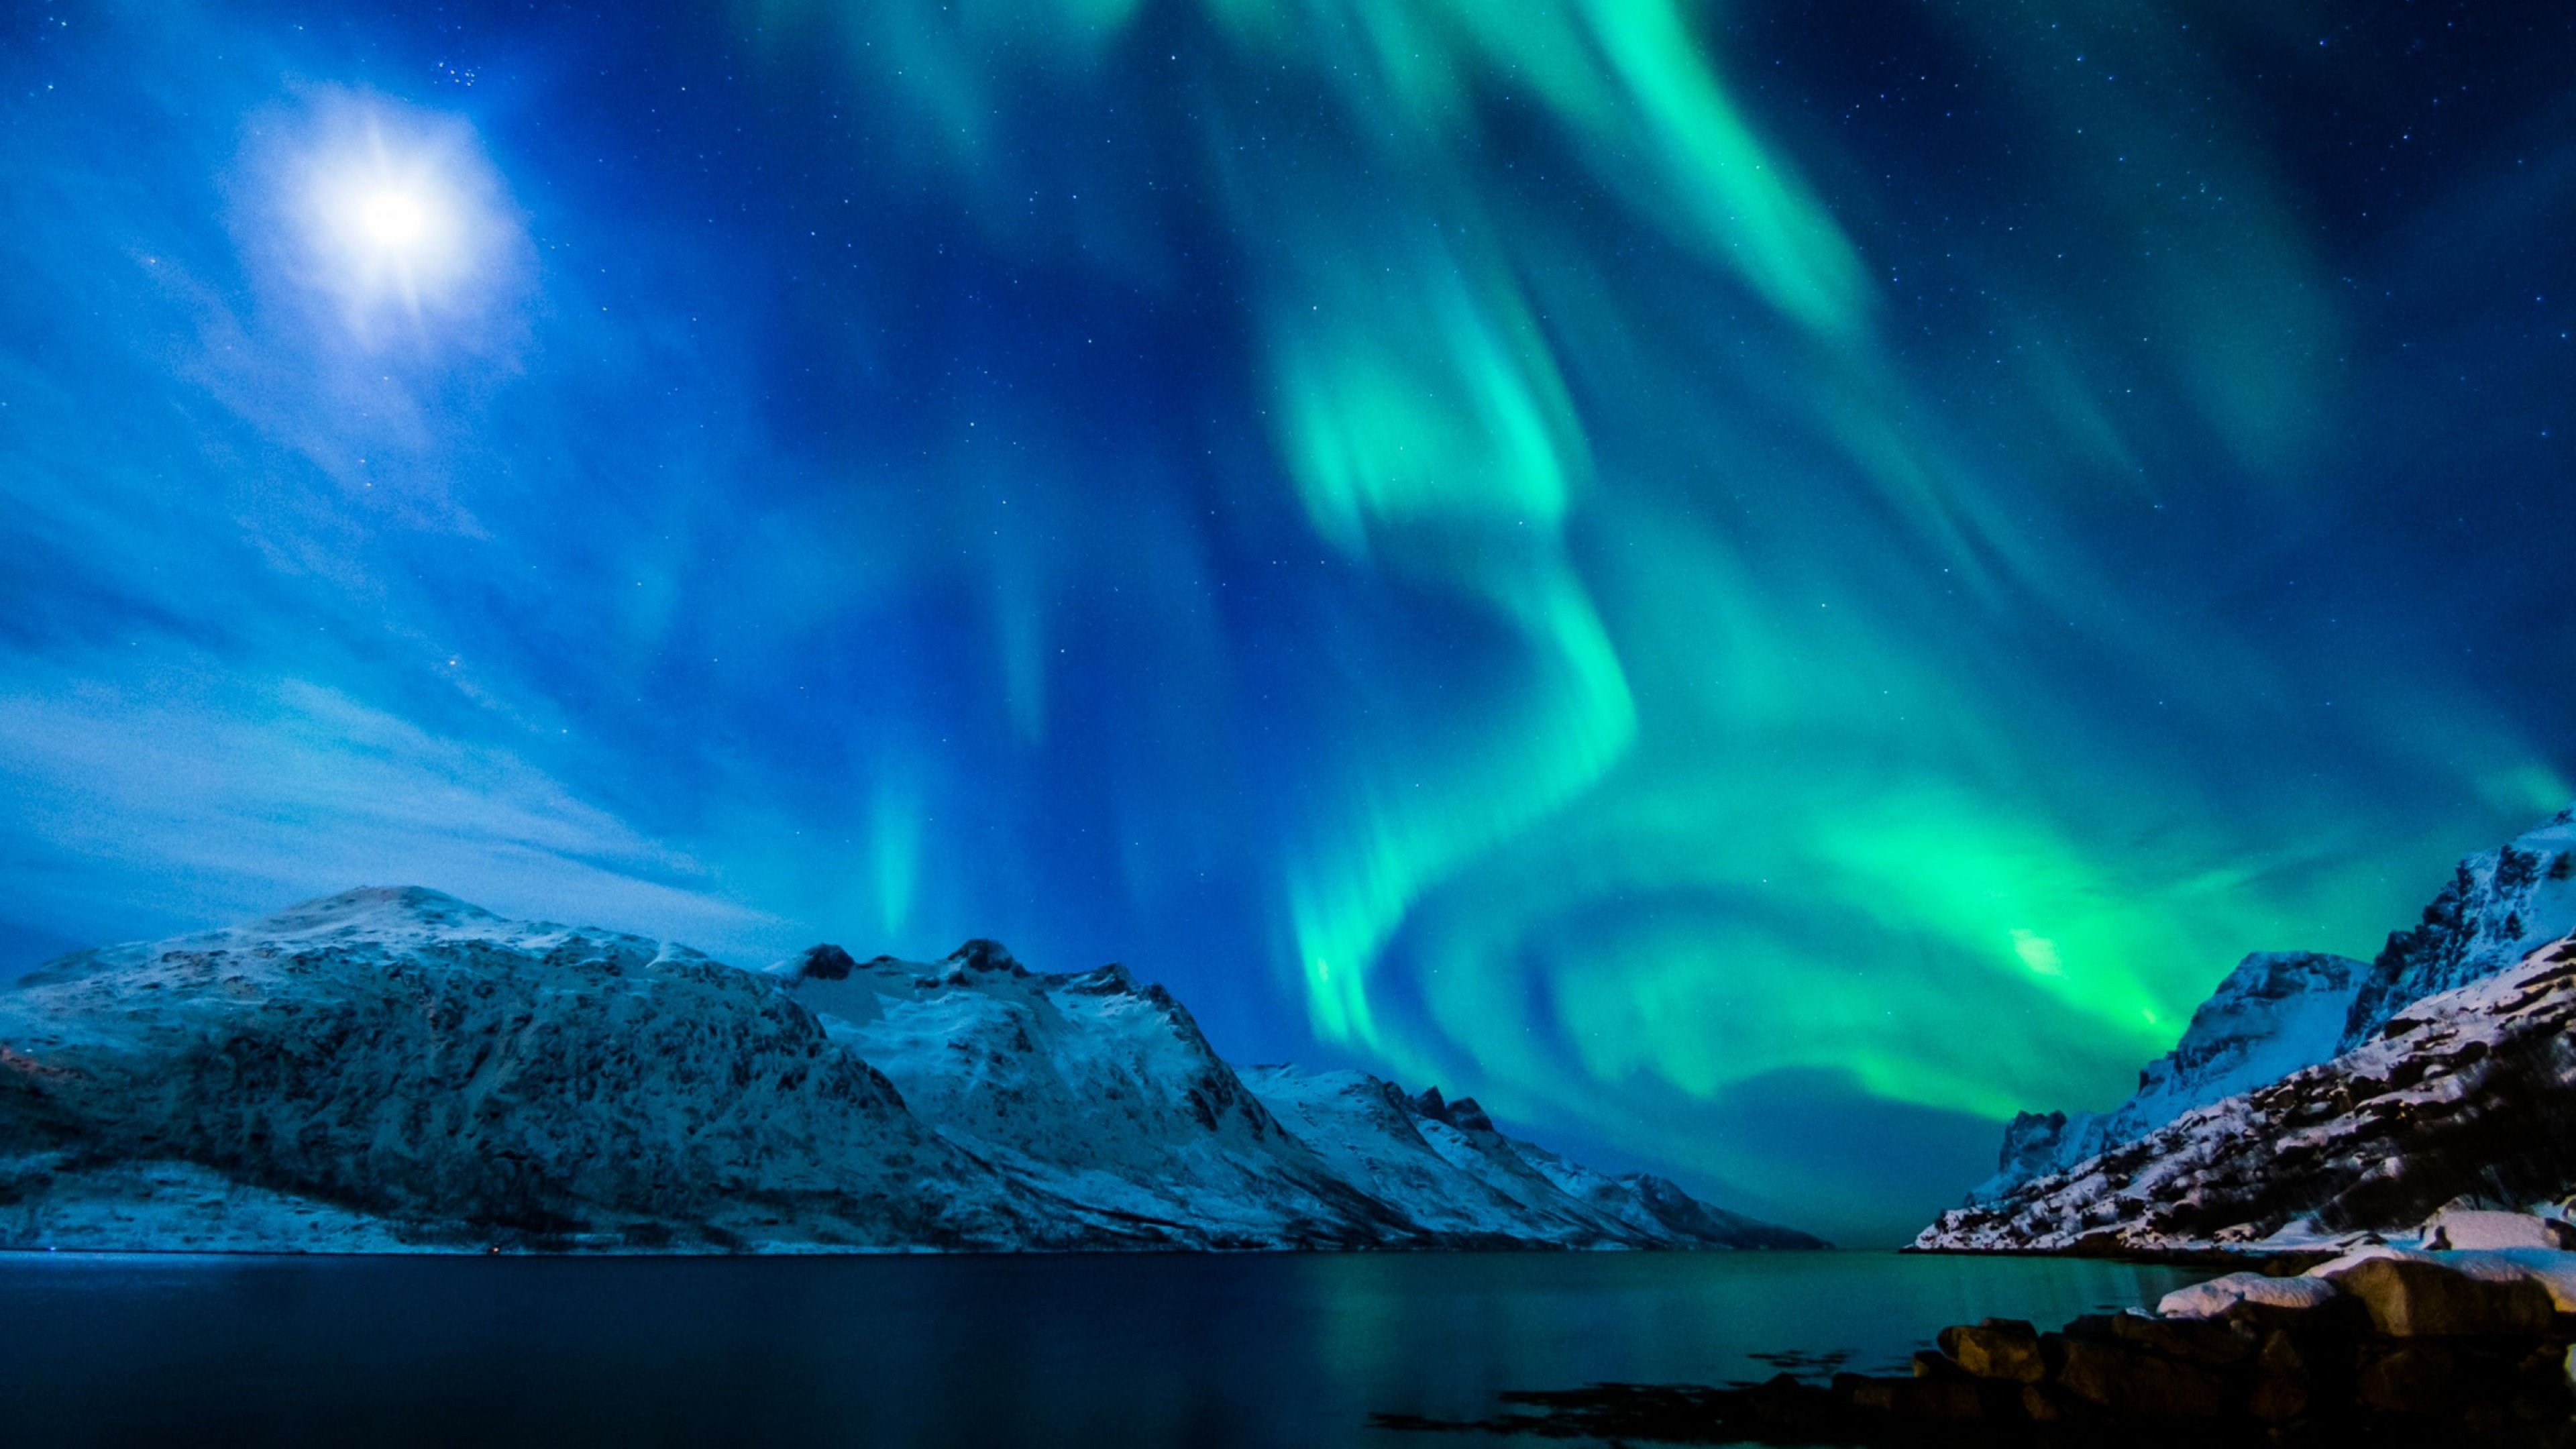 northern lights wallpaper download free cool high resolution